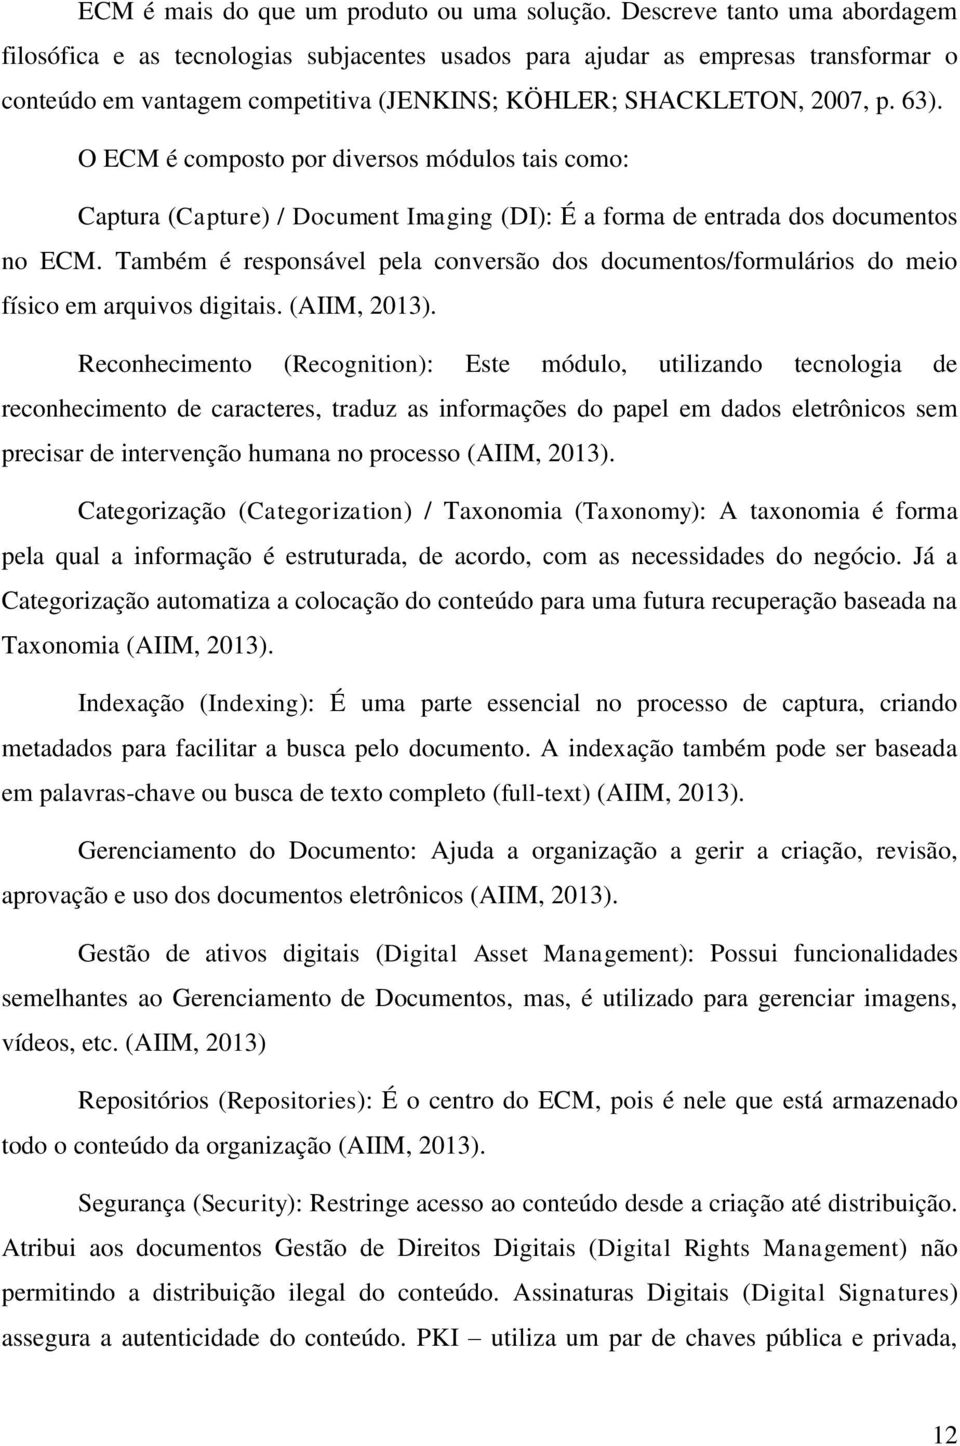 O ECM é composto por diversos módulos tais como: Captura (Capture) / Document Imaging (DI): É a forma de entrada dos documentos no ECM.